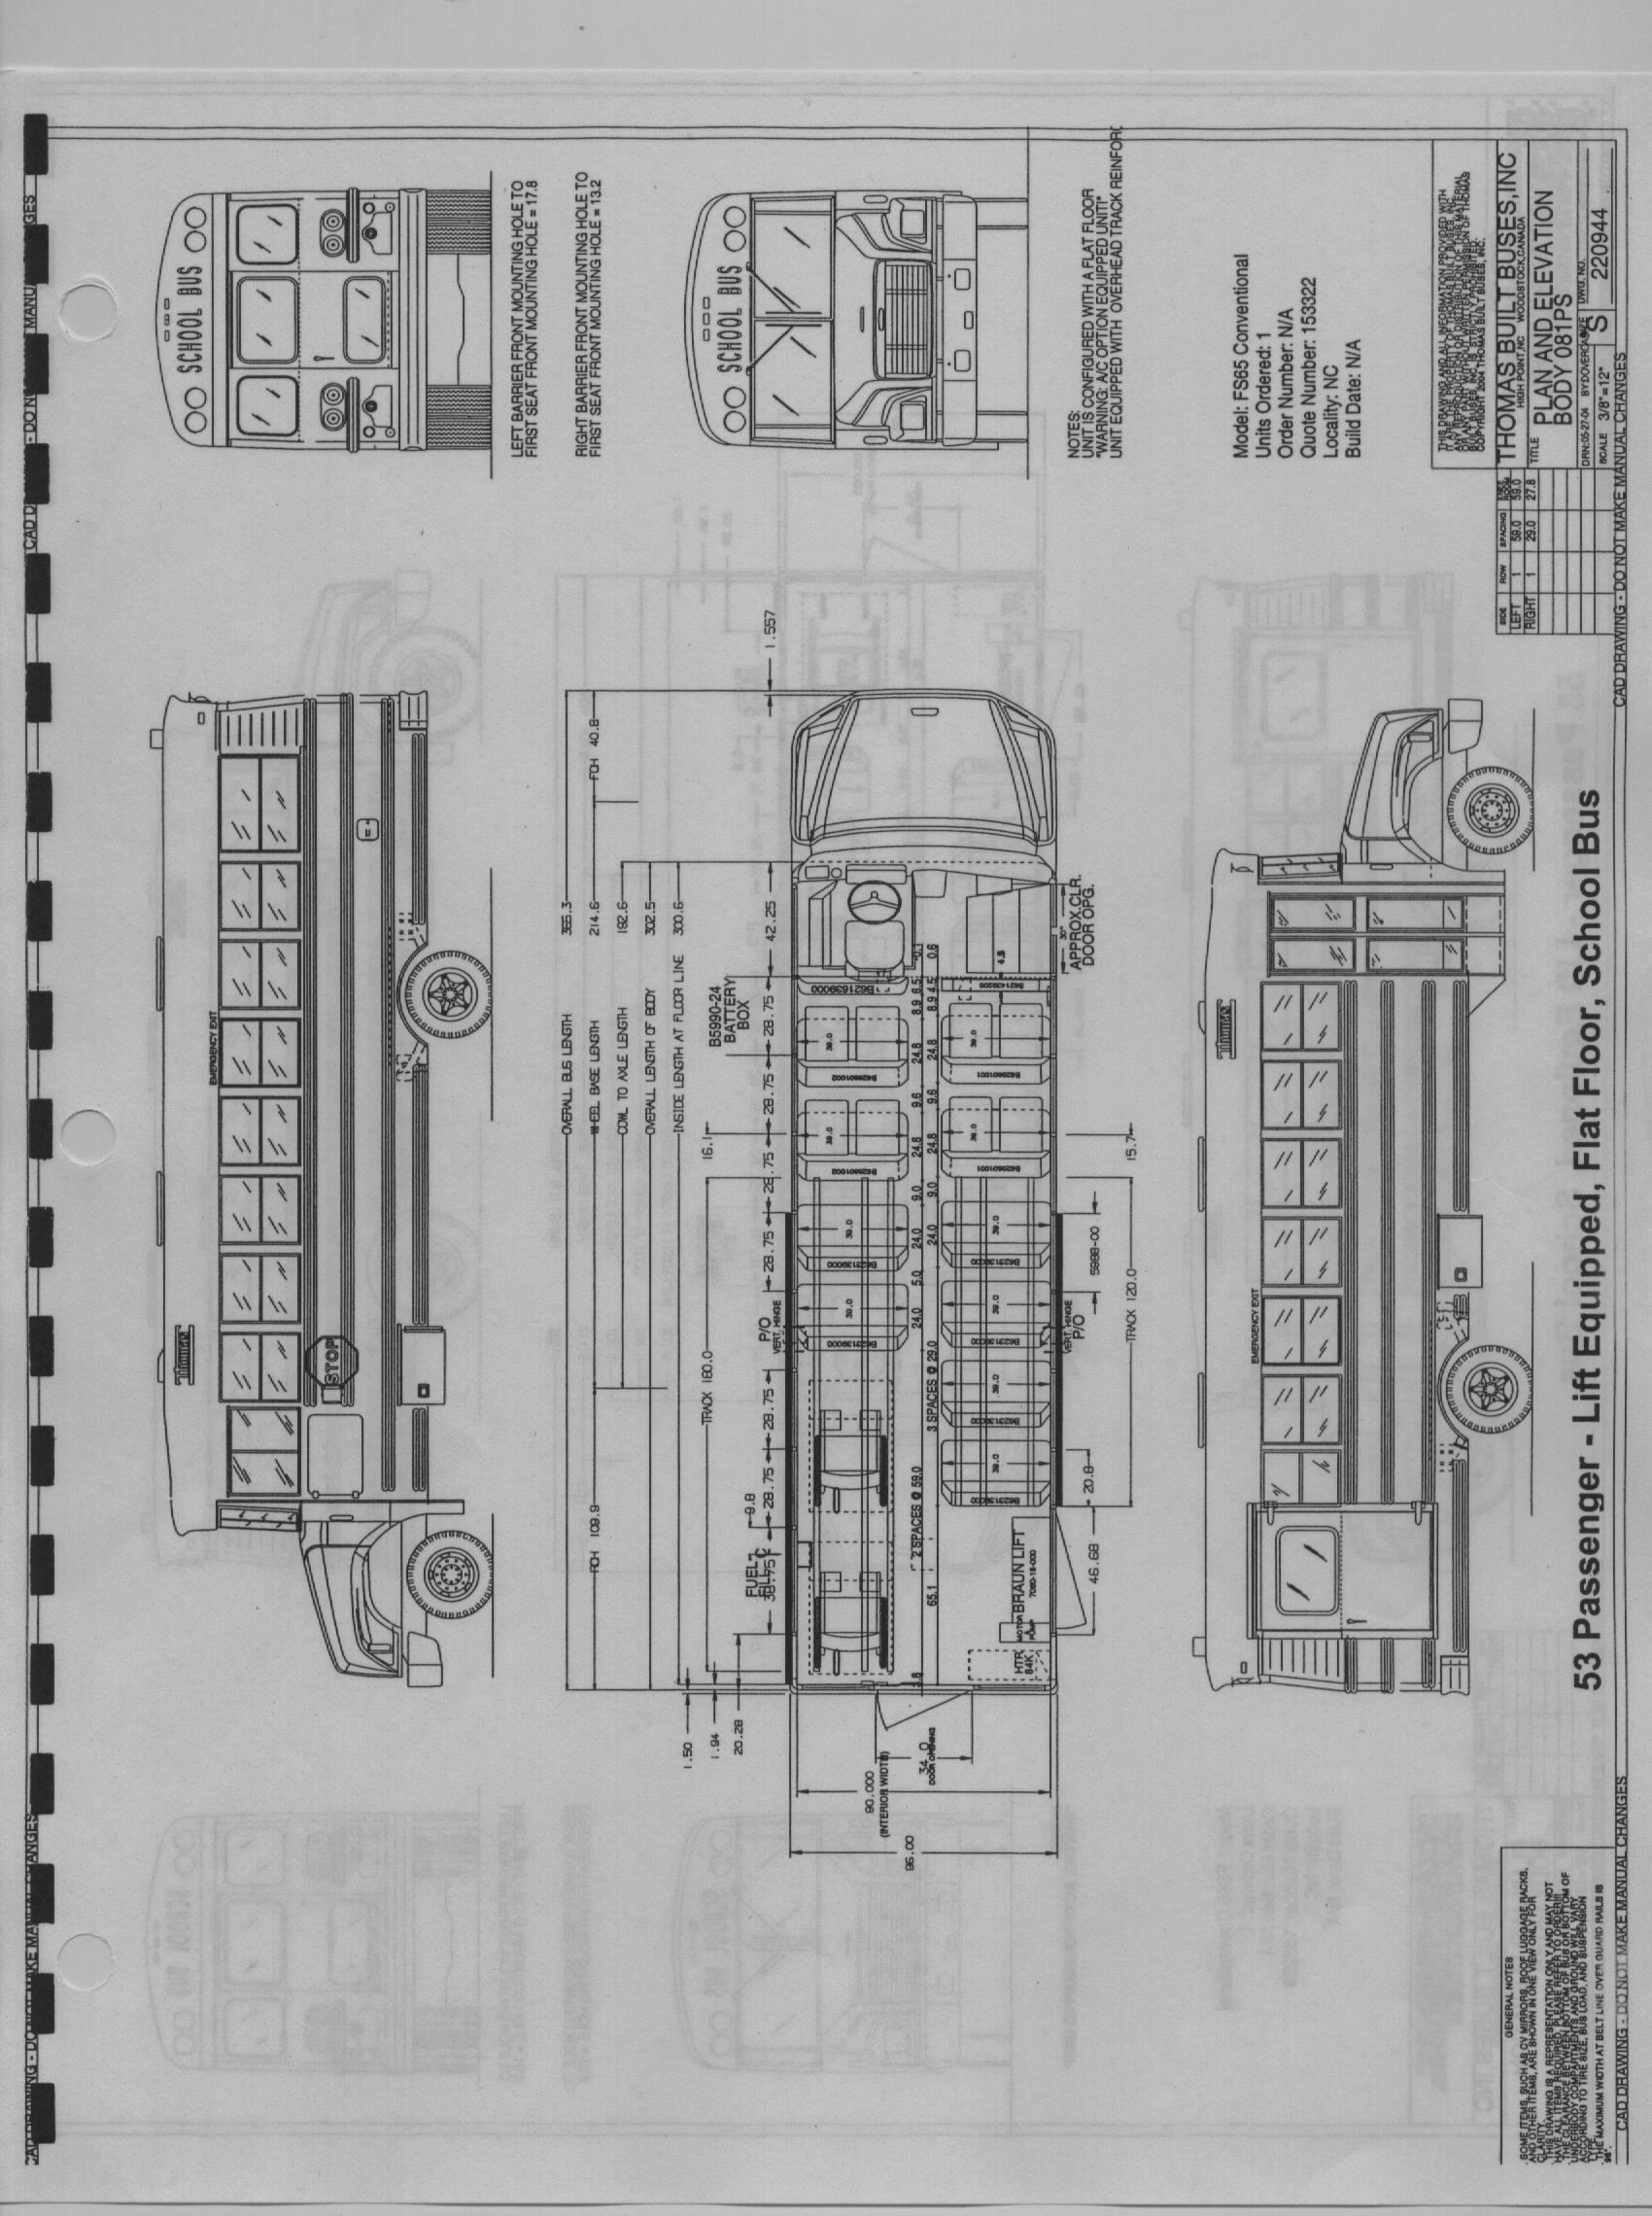 School Bus Chassis Diagram Pictures To Pin